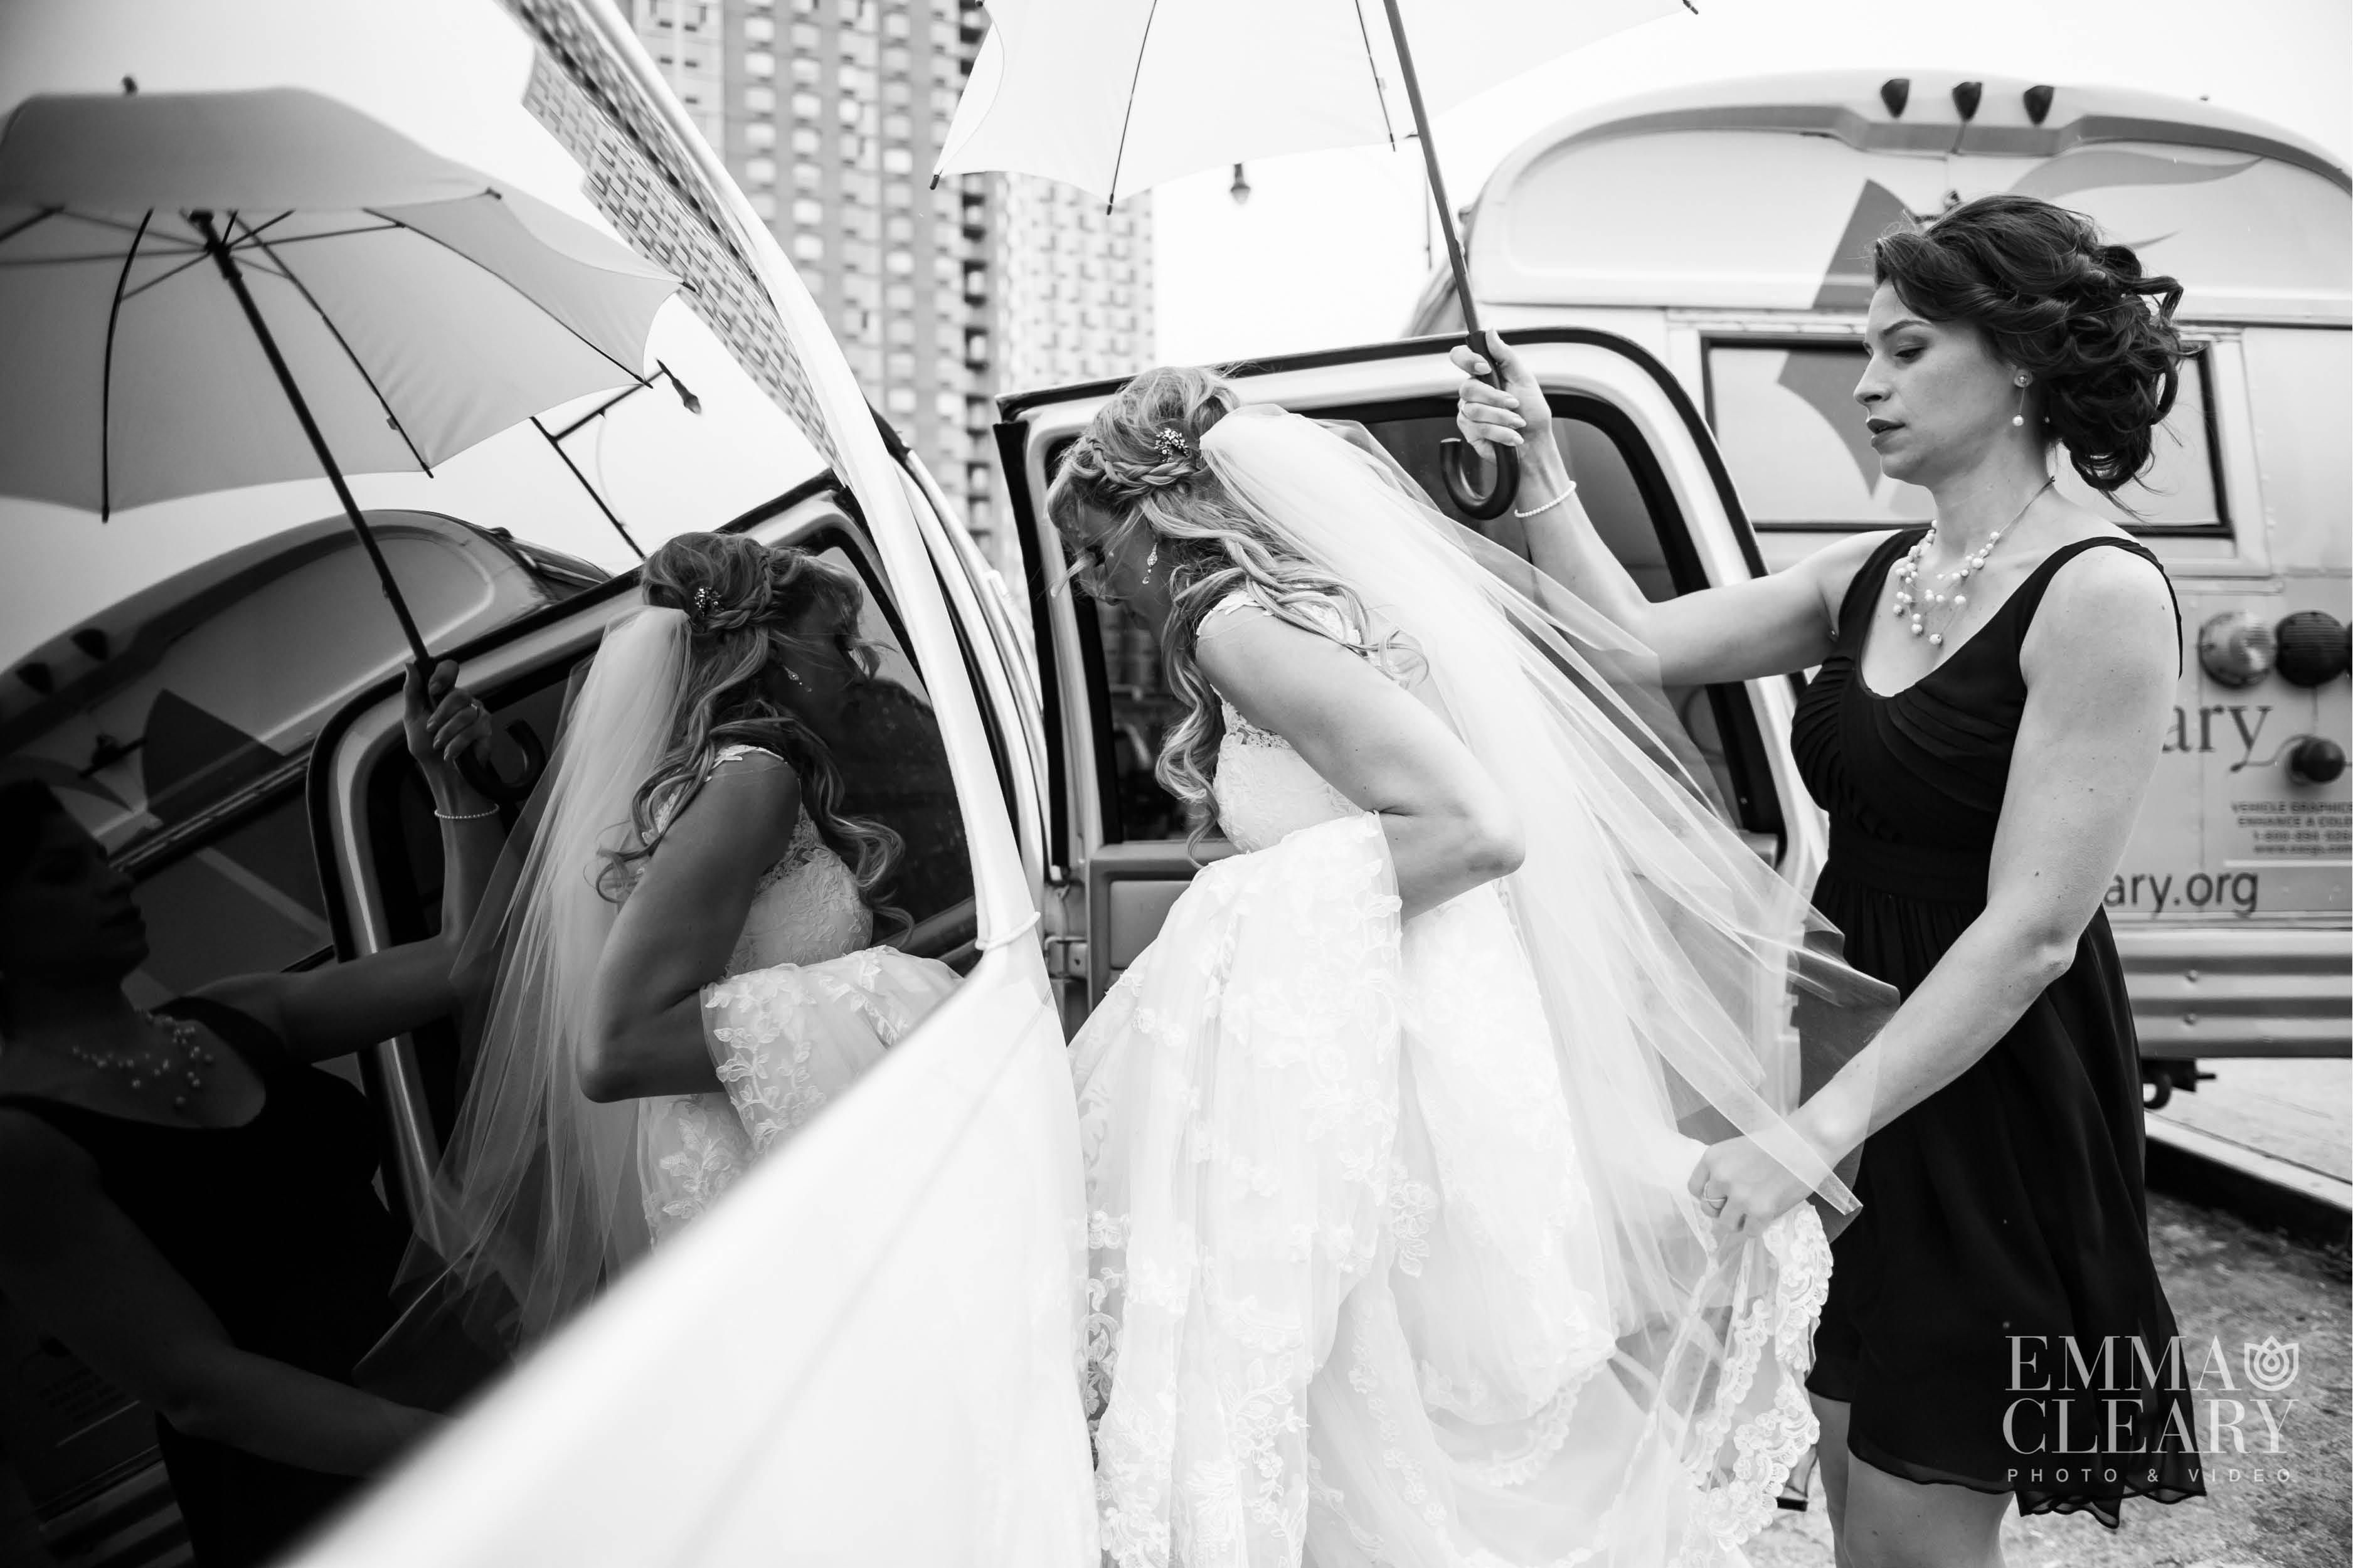 Emma_cleary_photography the Metropolitan Building wedding14